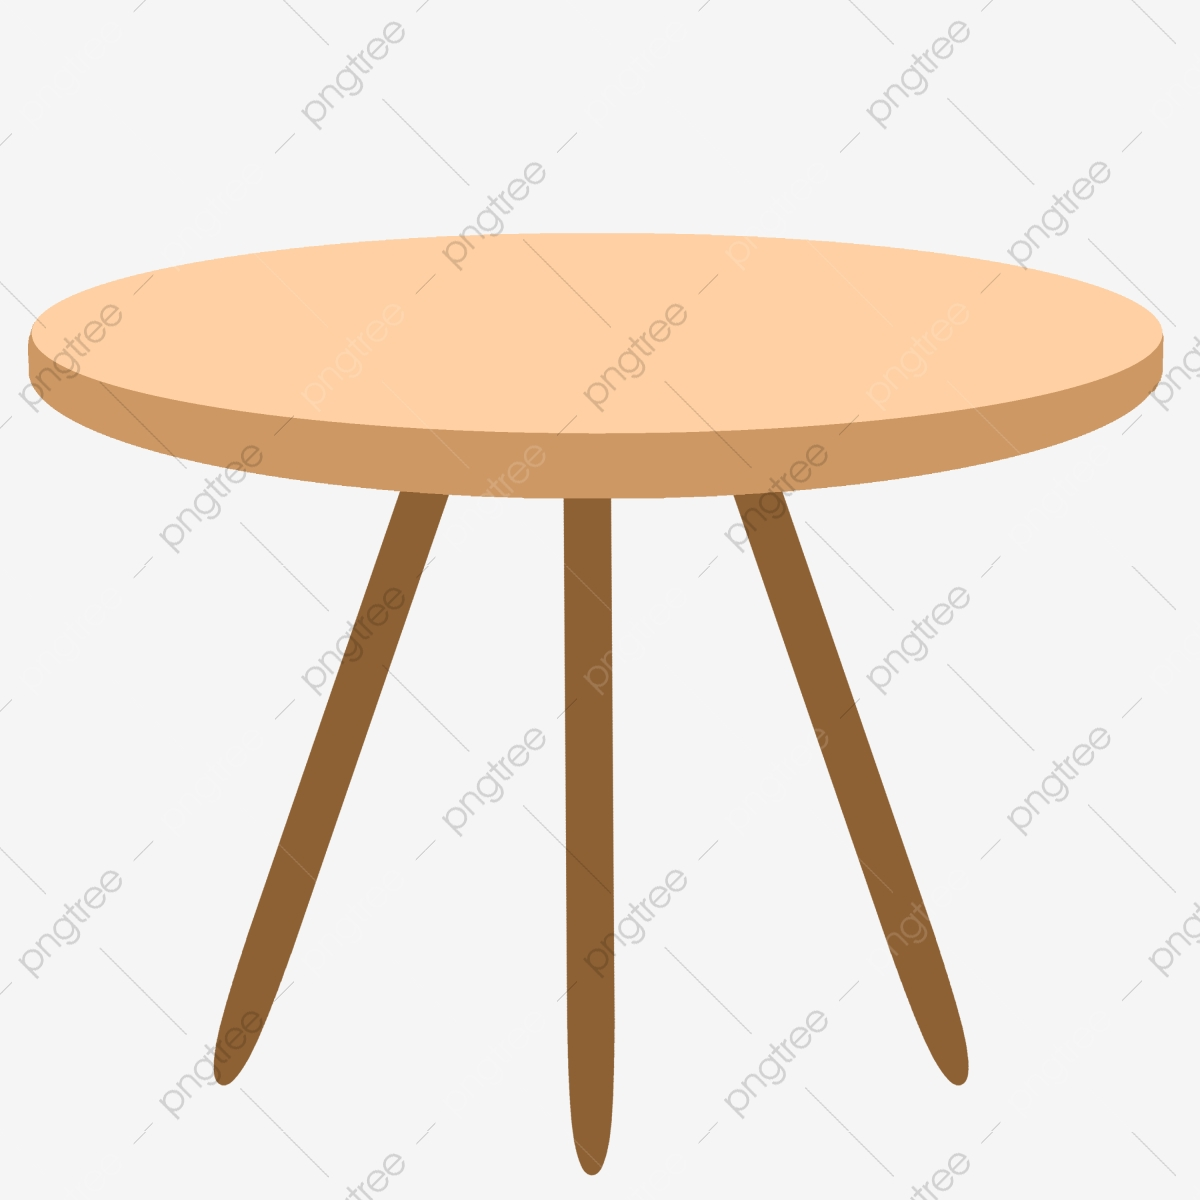 Round Table Triangle Table Home Decoration Section Png Picture Material Round Table Triangle Table Furniture Png Transparent Clipart Image And Psd File For Free Download